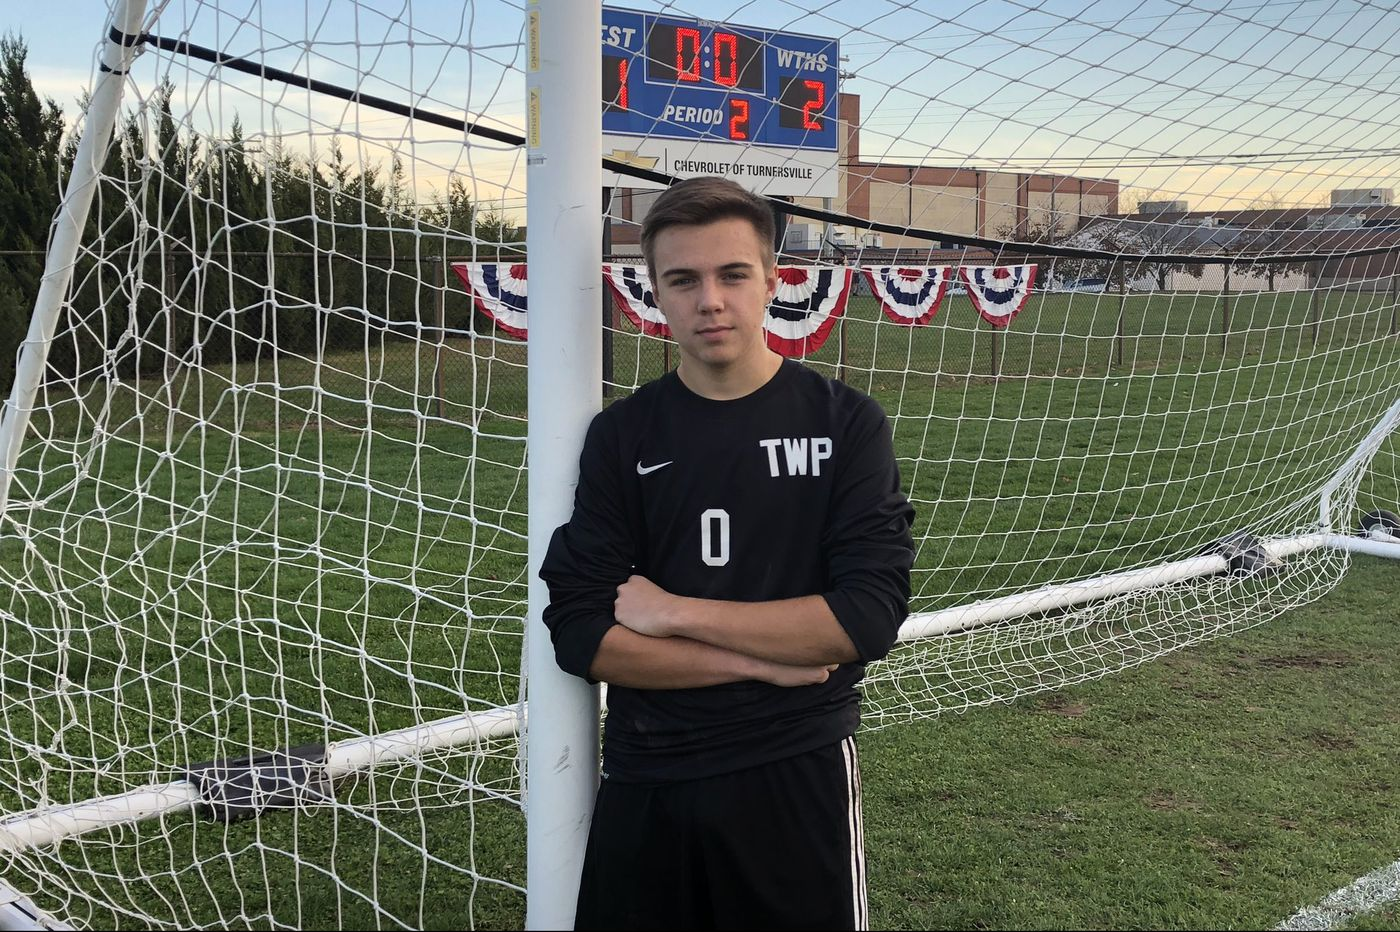 Goalkeeper Mike Pagano coming up big for Washington Township in soccer